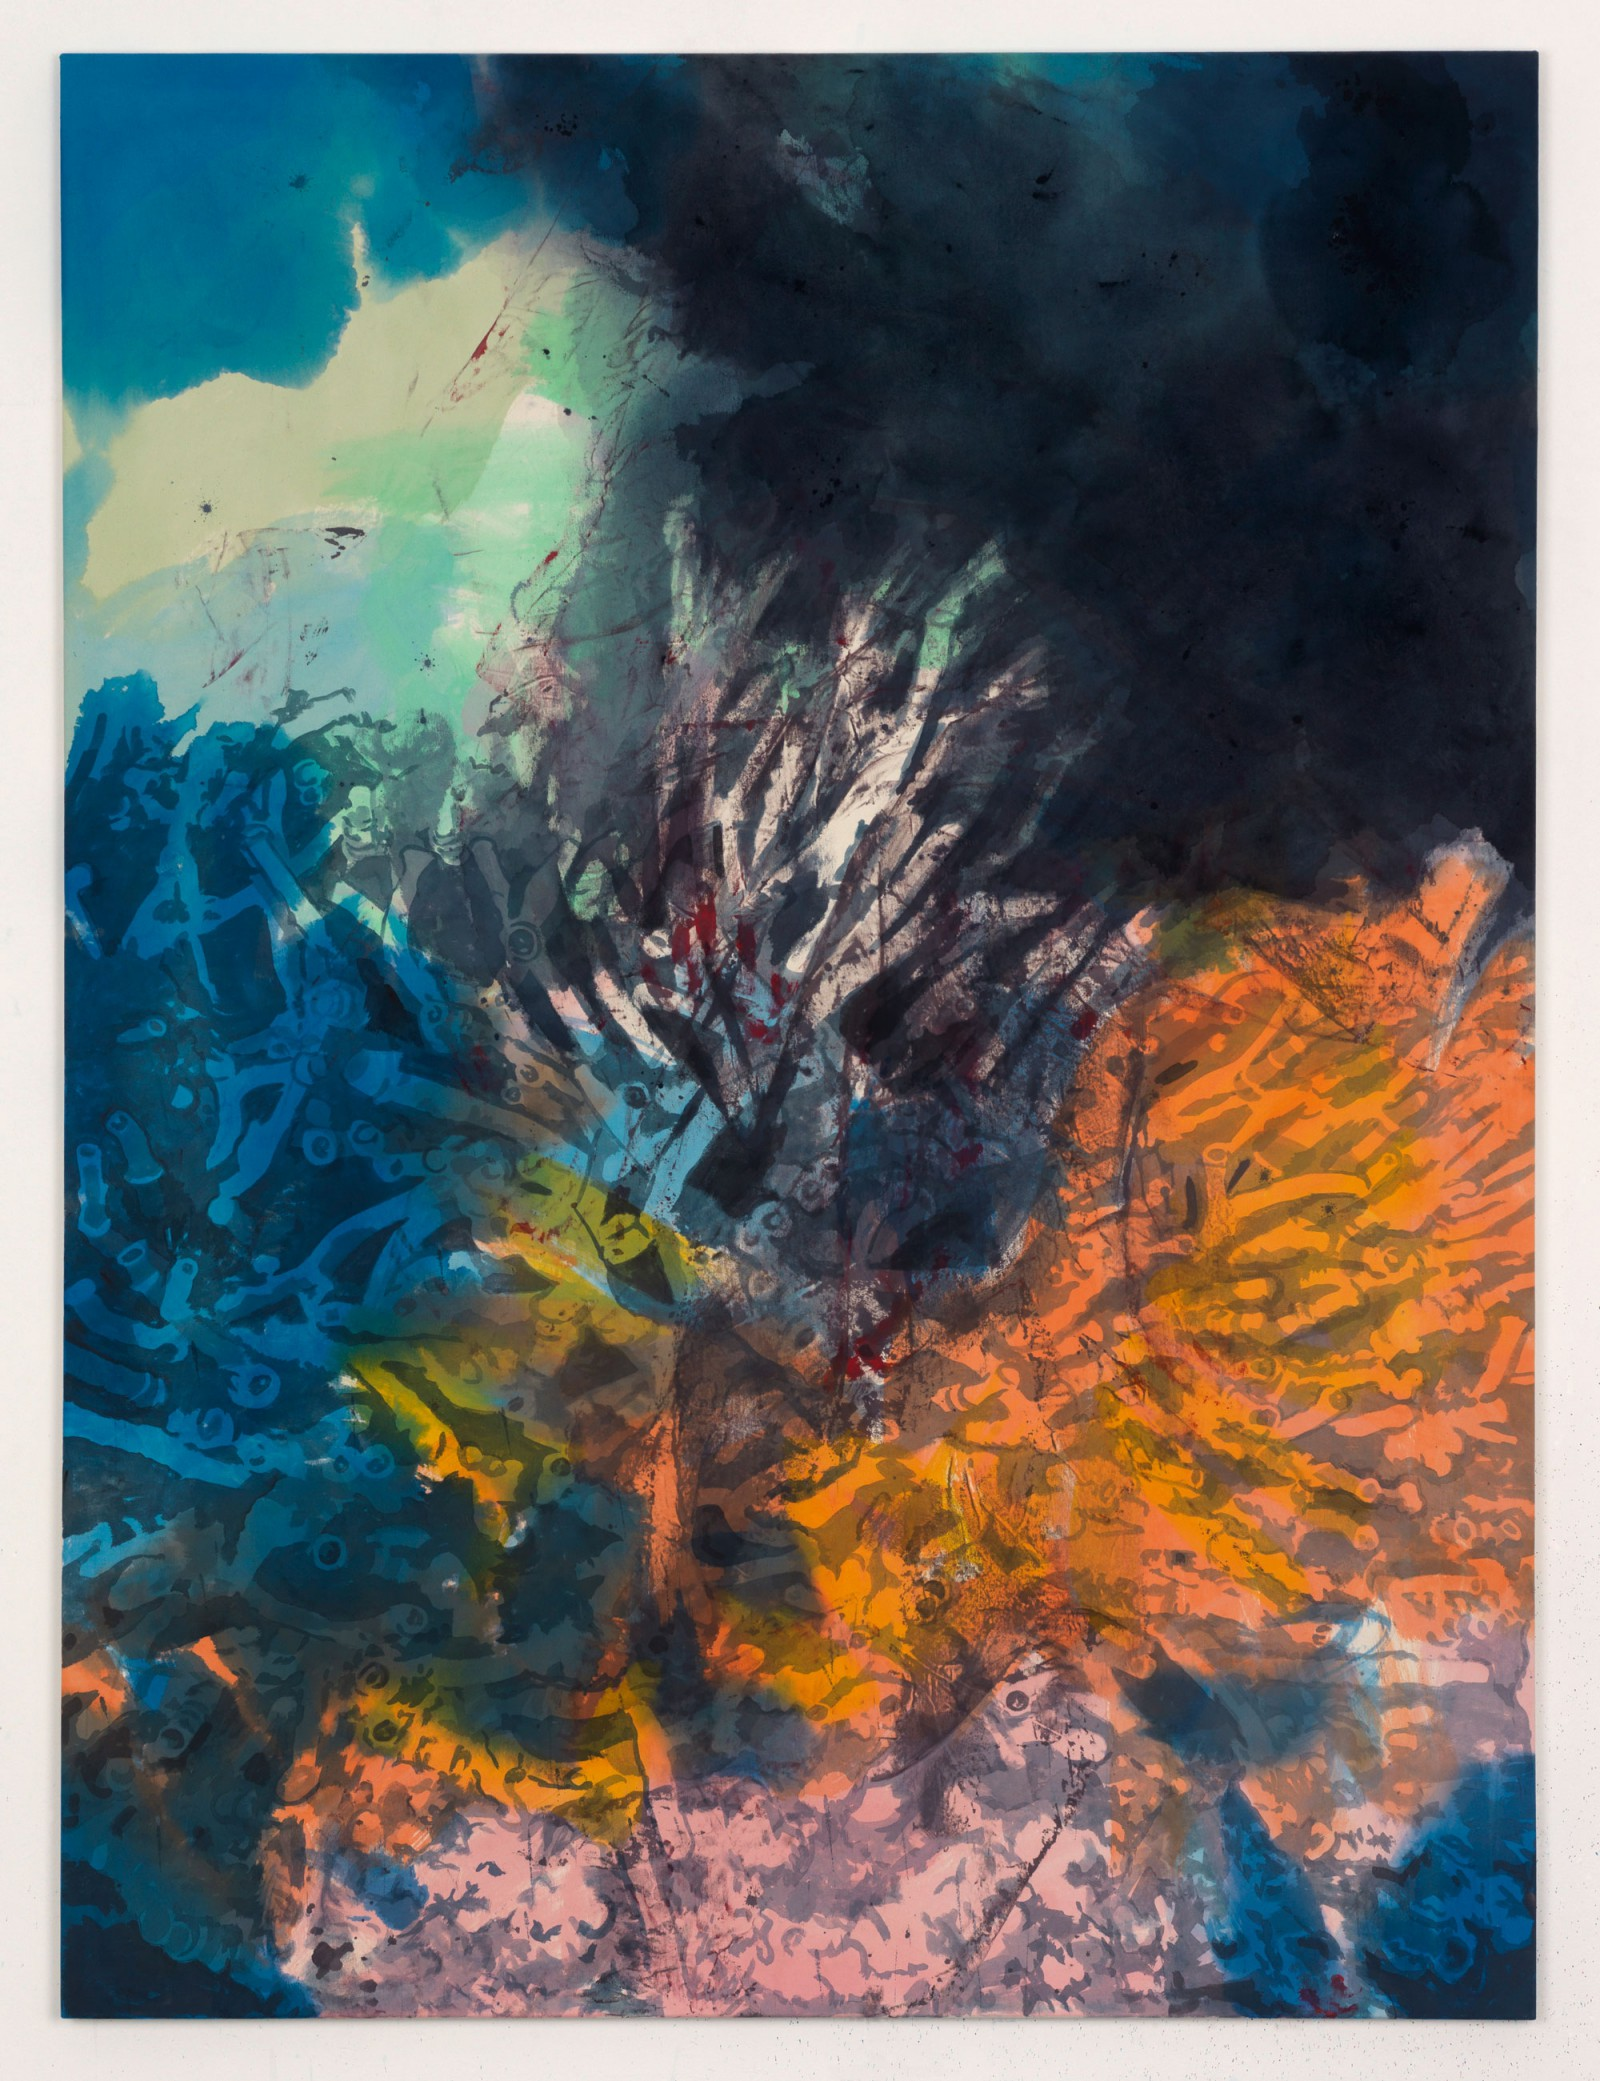 Kim Nekarda: teach me how to live, 2013, vinyl color & body print on cotton, 200 x 150 cm, private collection, Lingen